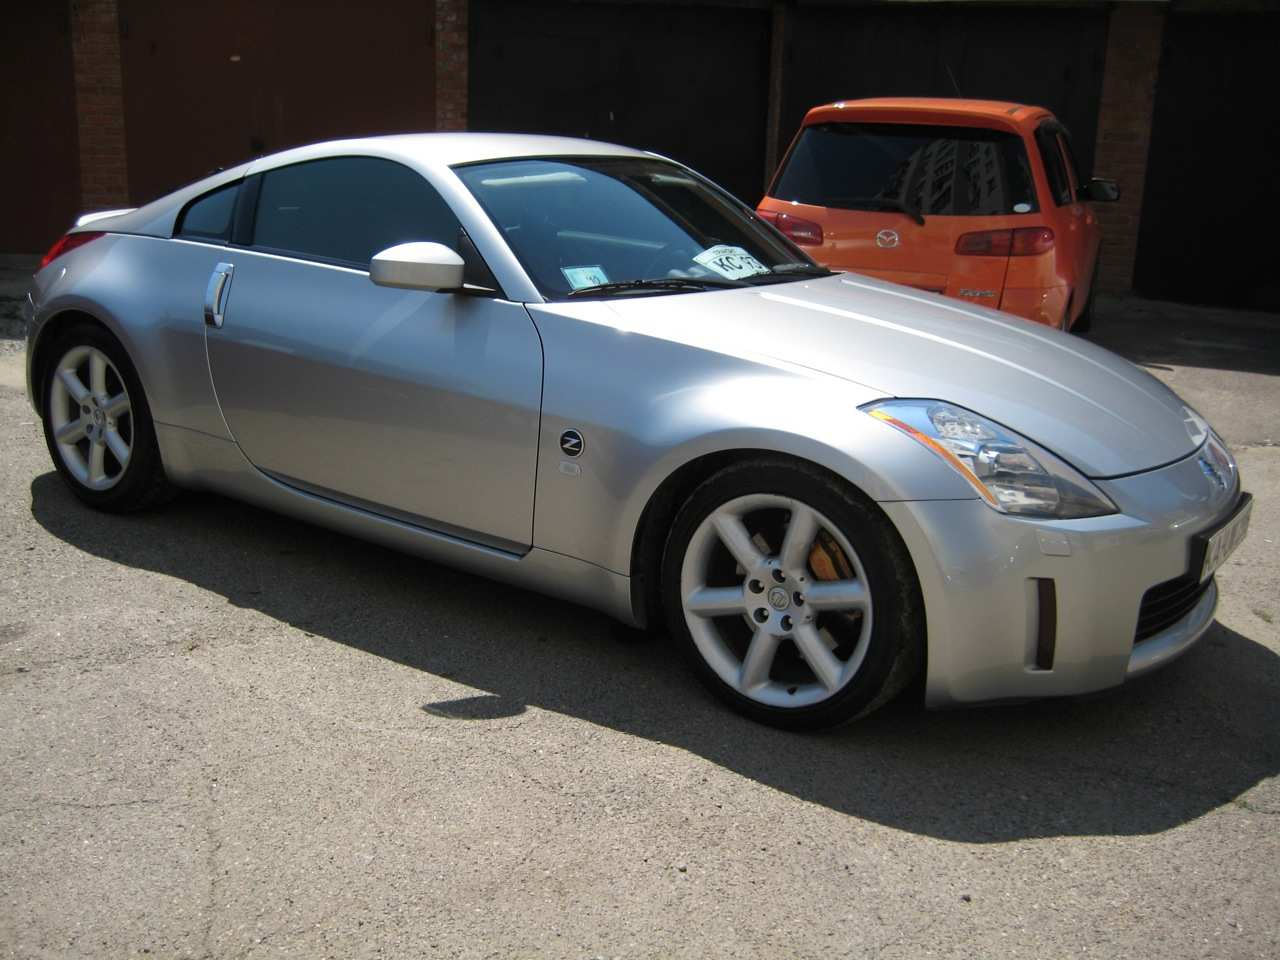 used 2004 nissan 350z photos, 3498cc., gasoline, fr or rr, manual